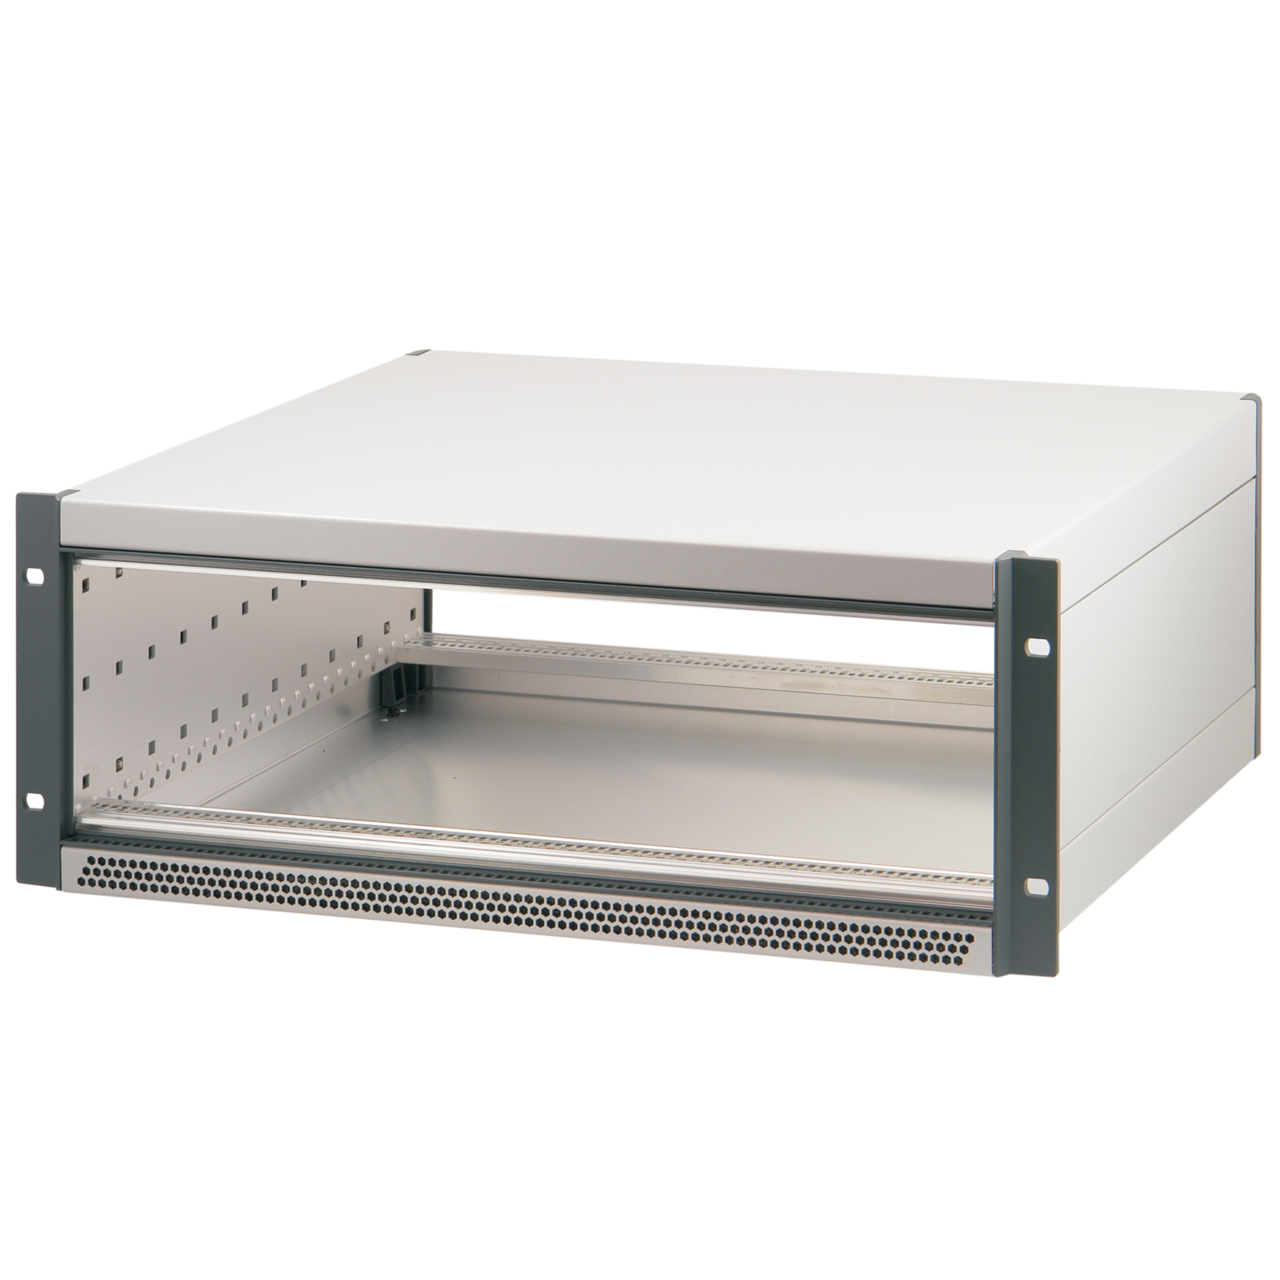 Image for RatiopacPRO AIR, Case, Unshielded, Rack Mount from Schroff - Asia Pacific